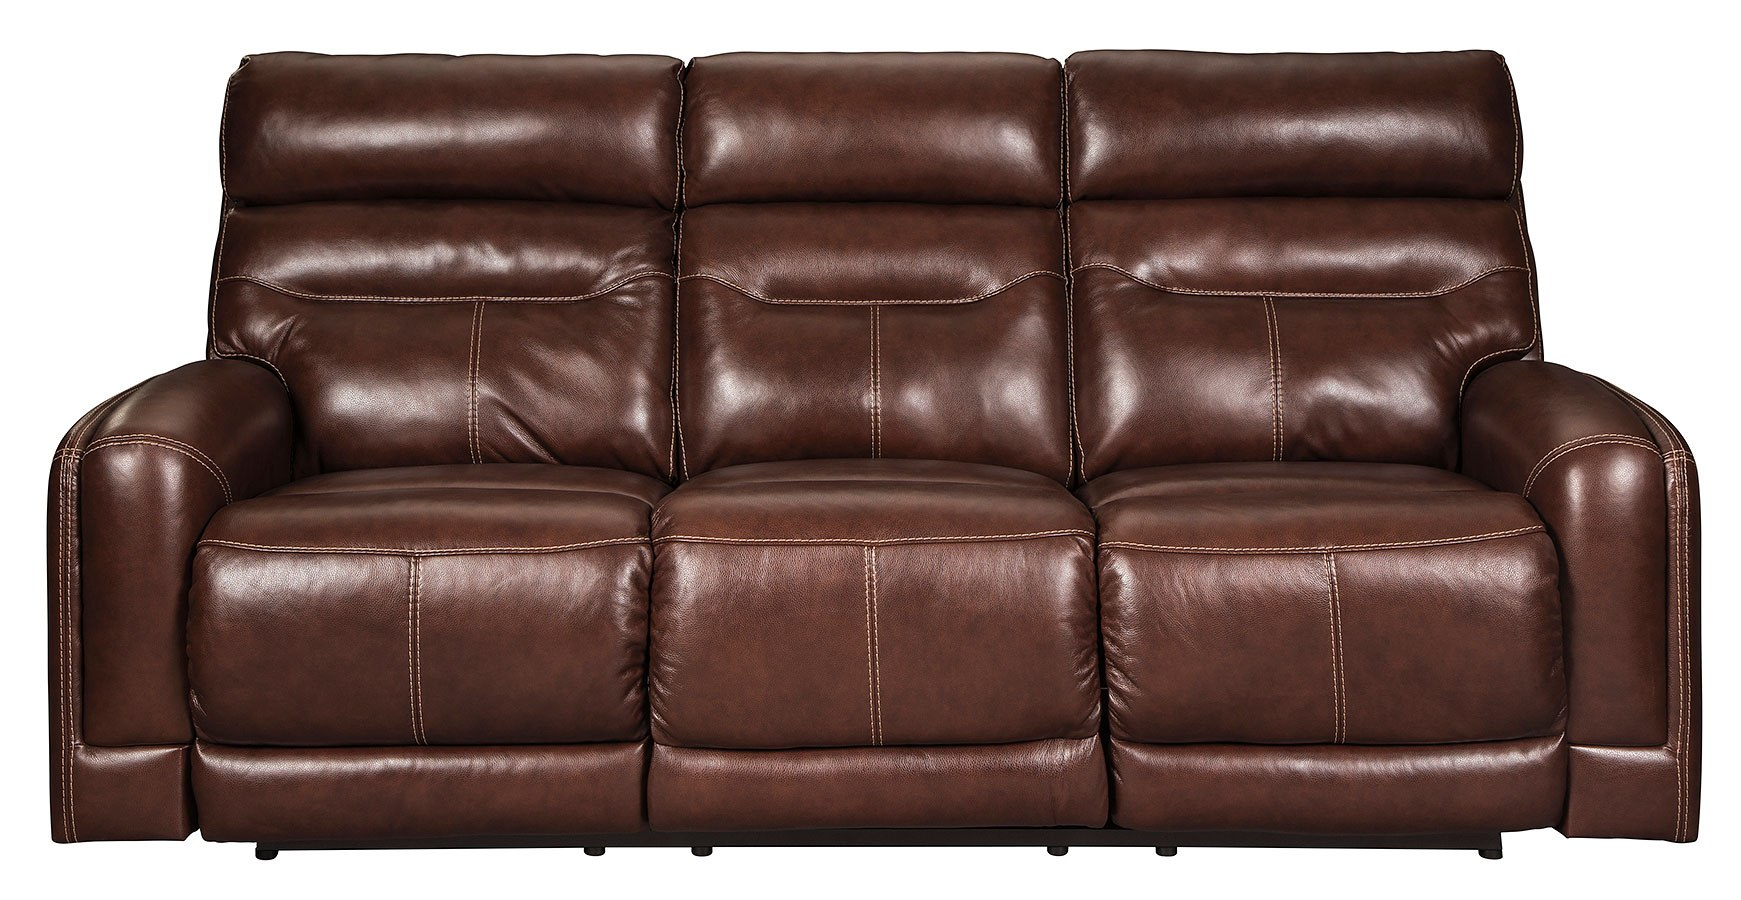 8c31a3840c Sessom Walnut Power Reclining Sofa w/ Adjustable Headrests. Part of the  Sessom Collection by Signature Design by Ashley Furniture